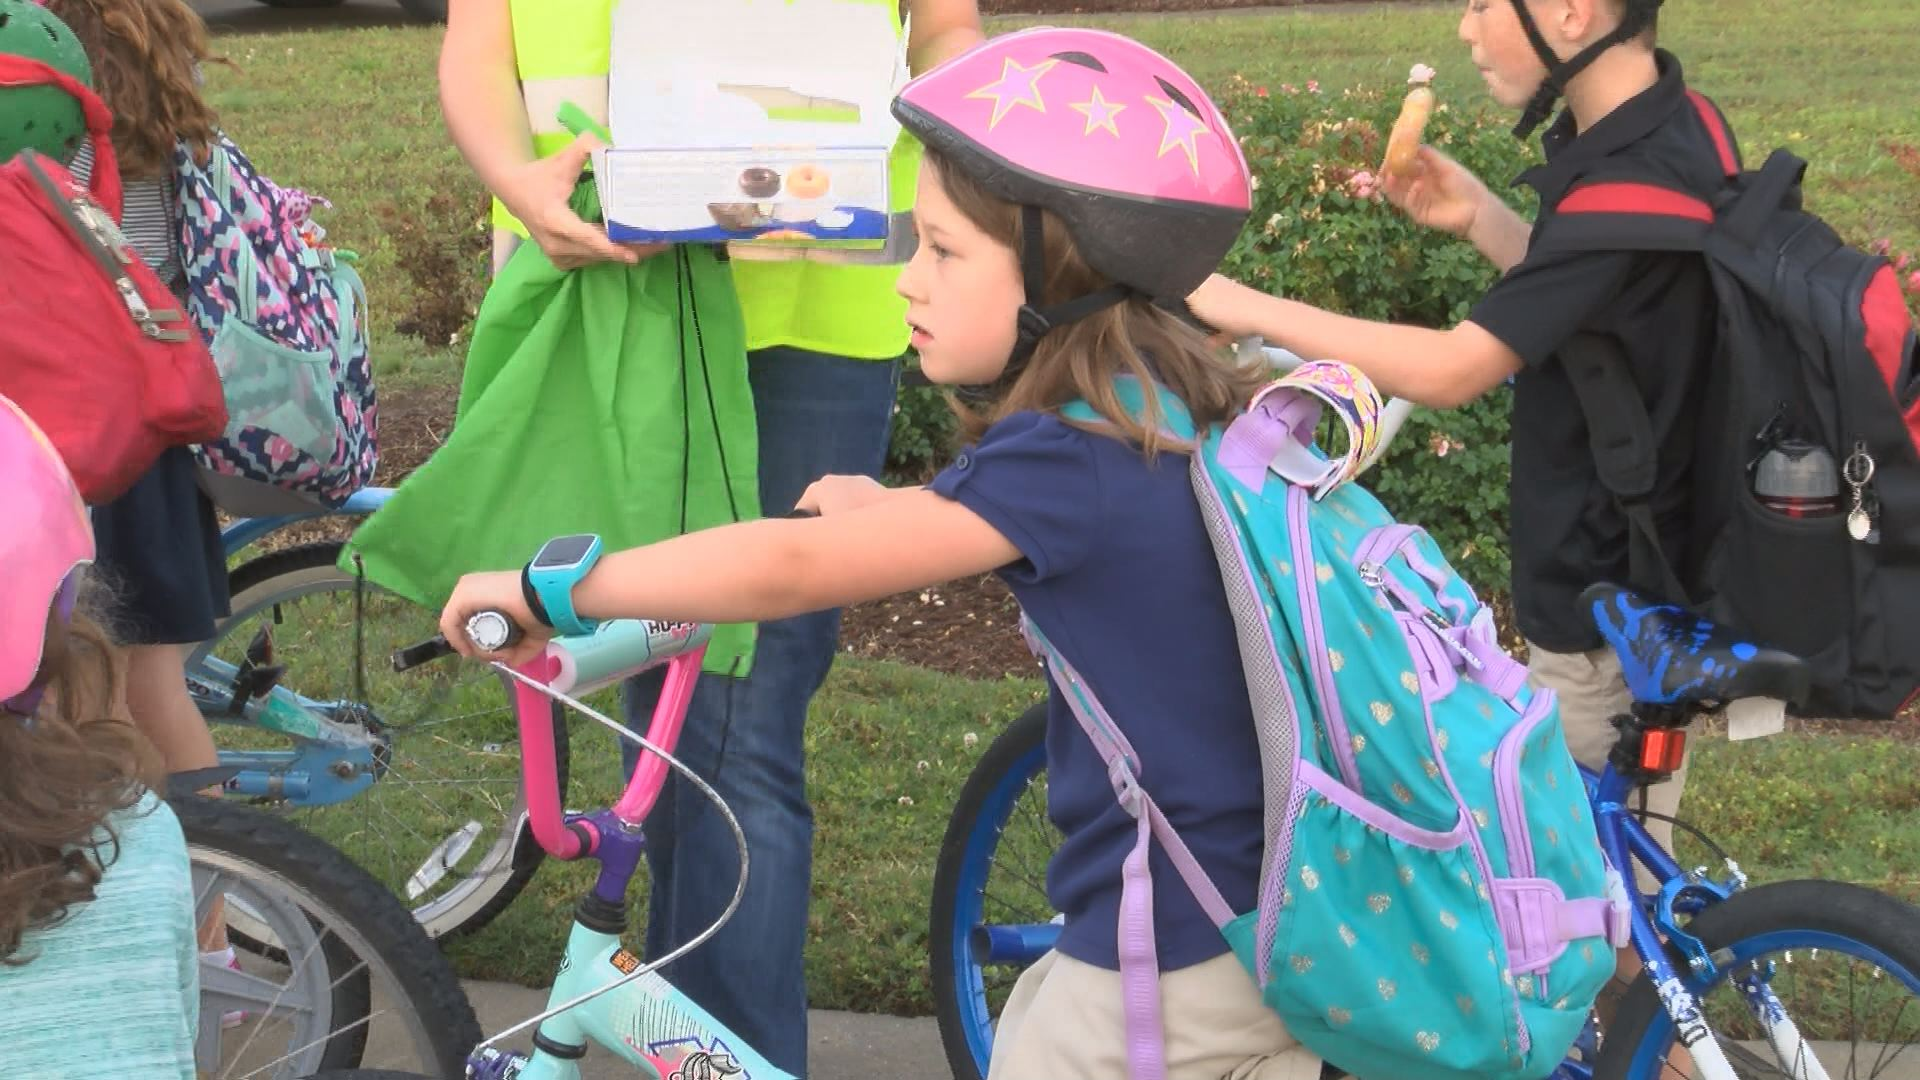 Spindale Elementary to take part in Bike to School Day